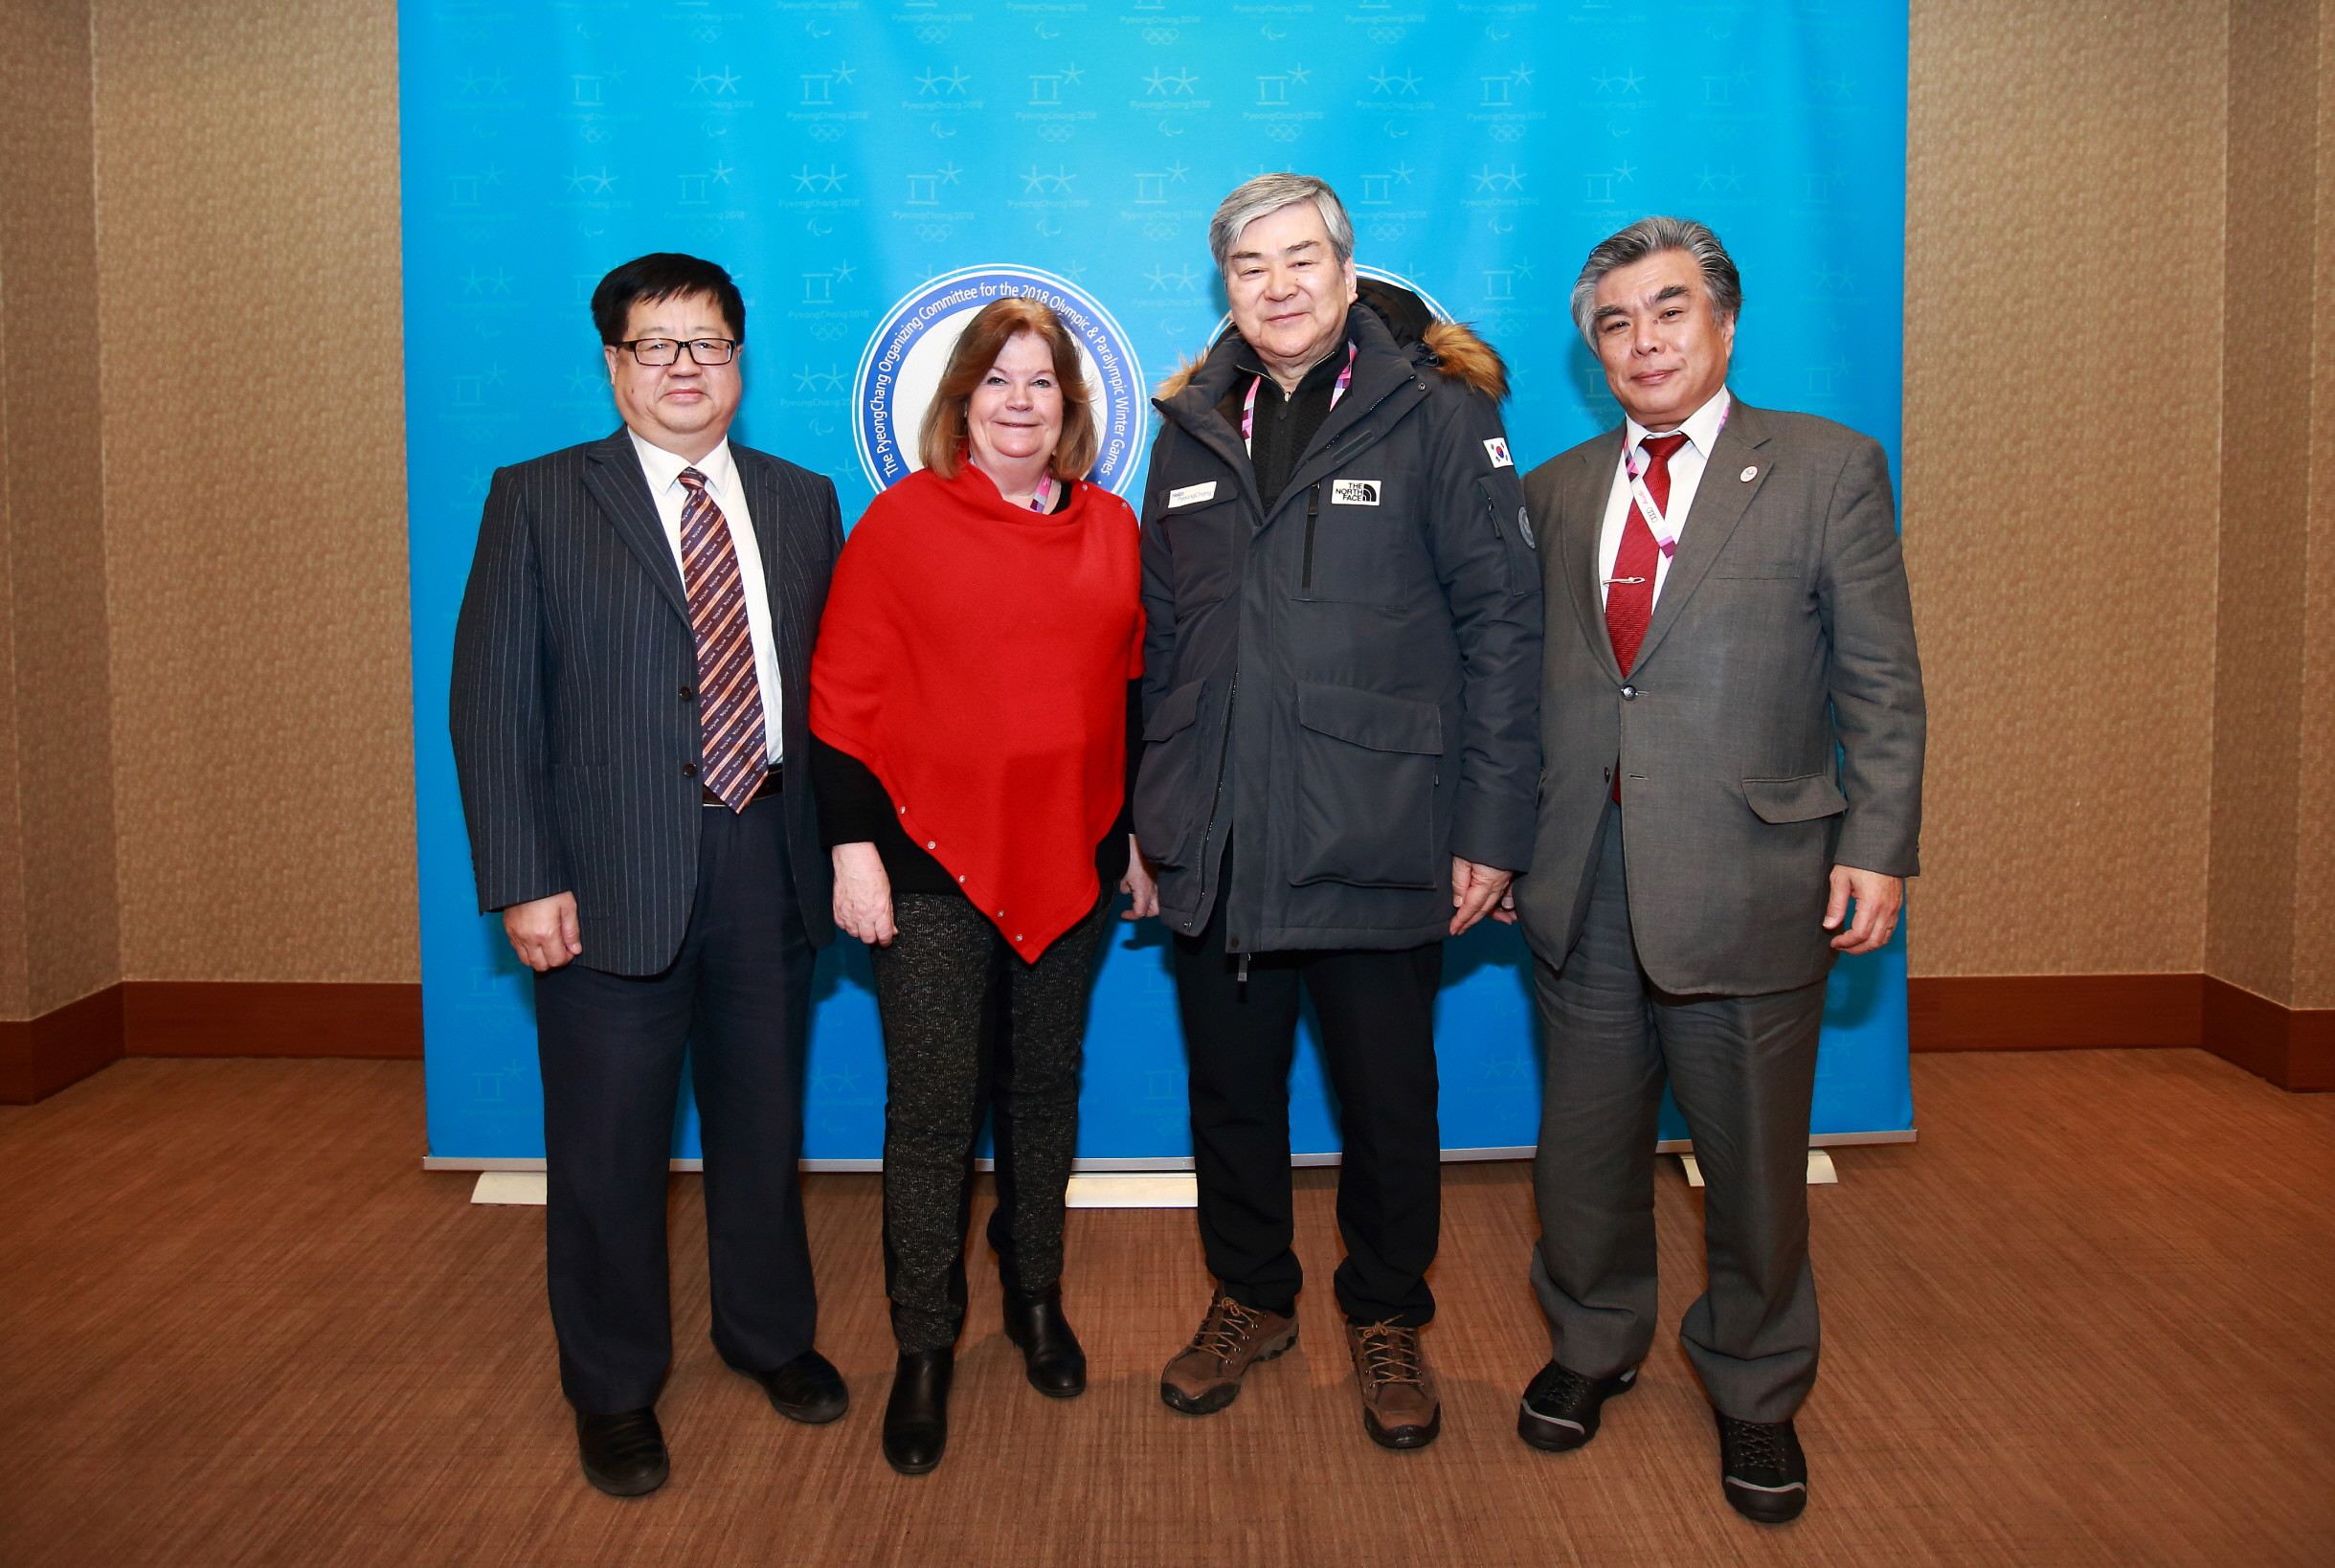 The weekend in Korea saw the first-ever meeting of the Beijing 2022, Tokyo 2020 and Pyeongchang 2018 organizing committees. From left: Da Xu, deputy secretary general, Beijing 2022; Gunilla Lindberg, IOC 2018 coordination commission chair; Cho; Yukihiko Nunomura, chief operating officer, Tokyo 2020 // photo POCOG